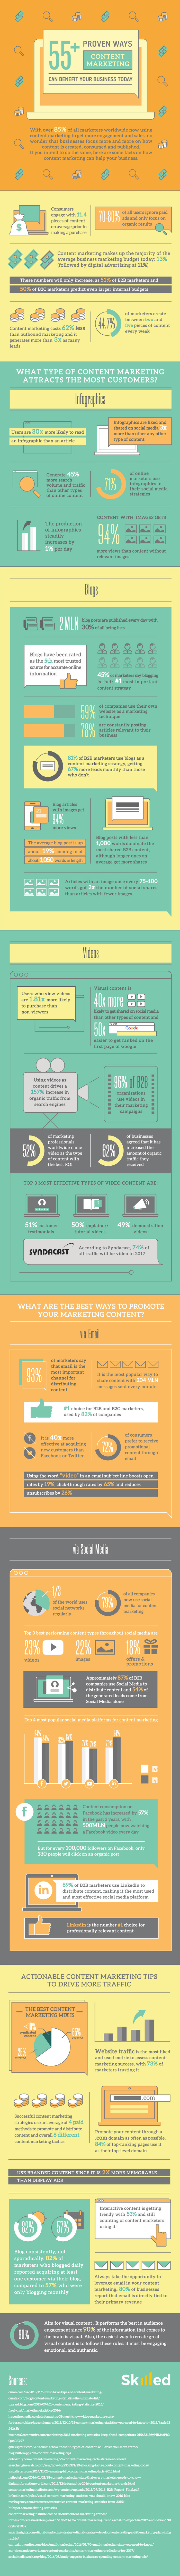 Content Marketing: 55 Proven Ways To Help Your Business [Infographic]